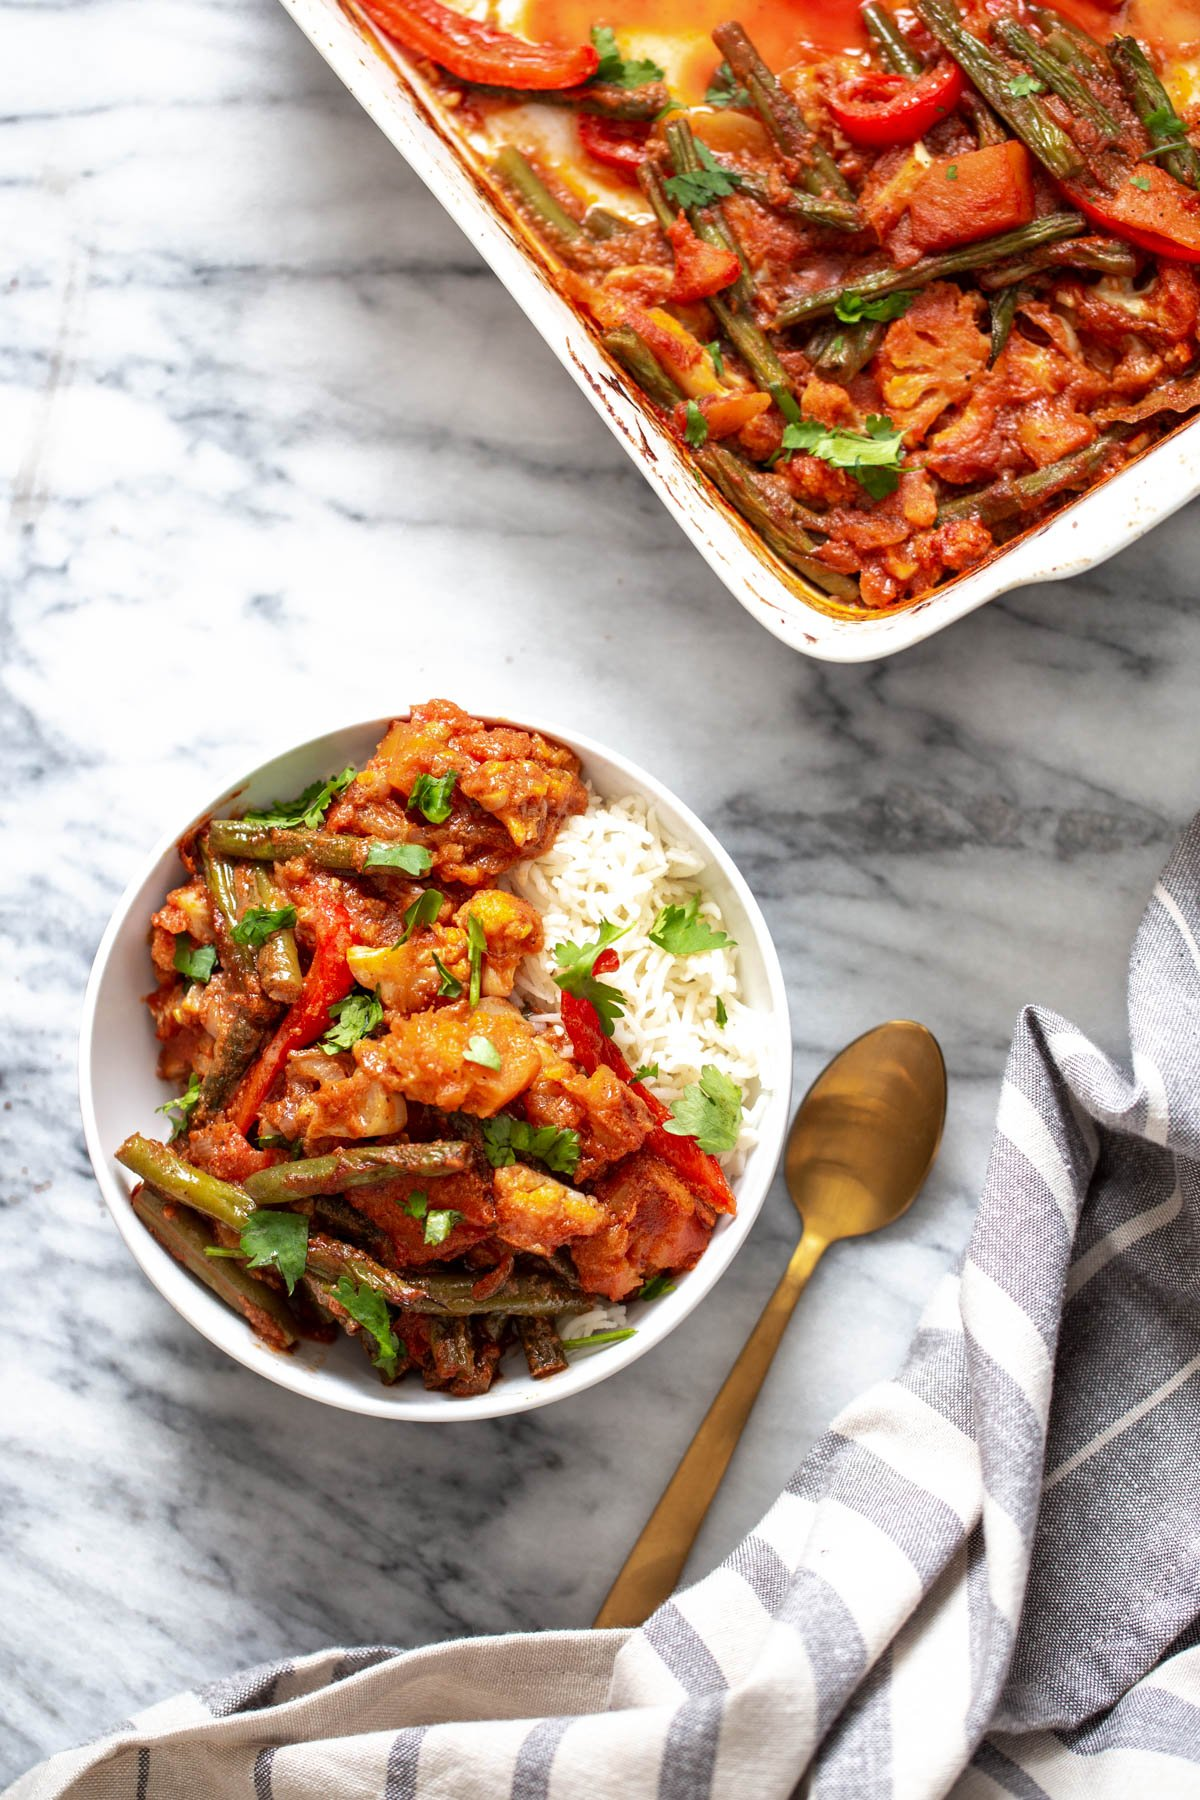 vegan curry vegetable casserole served with a side of rice and sprinkled with. coriander seeds